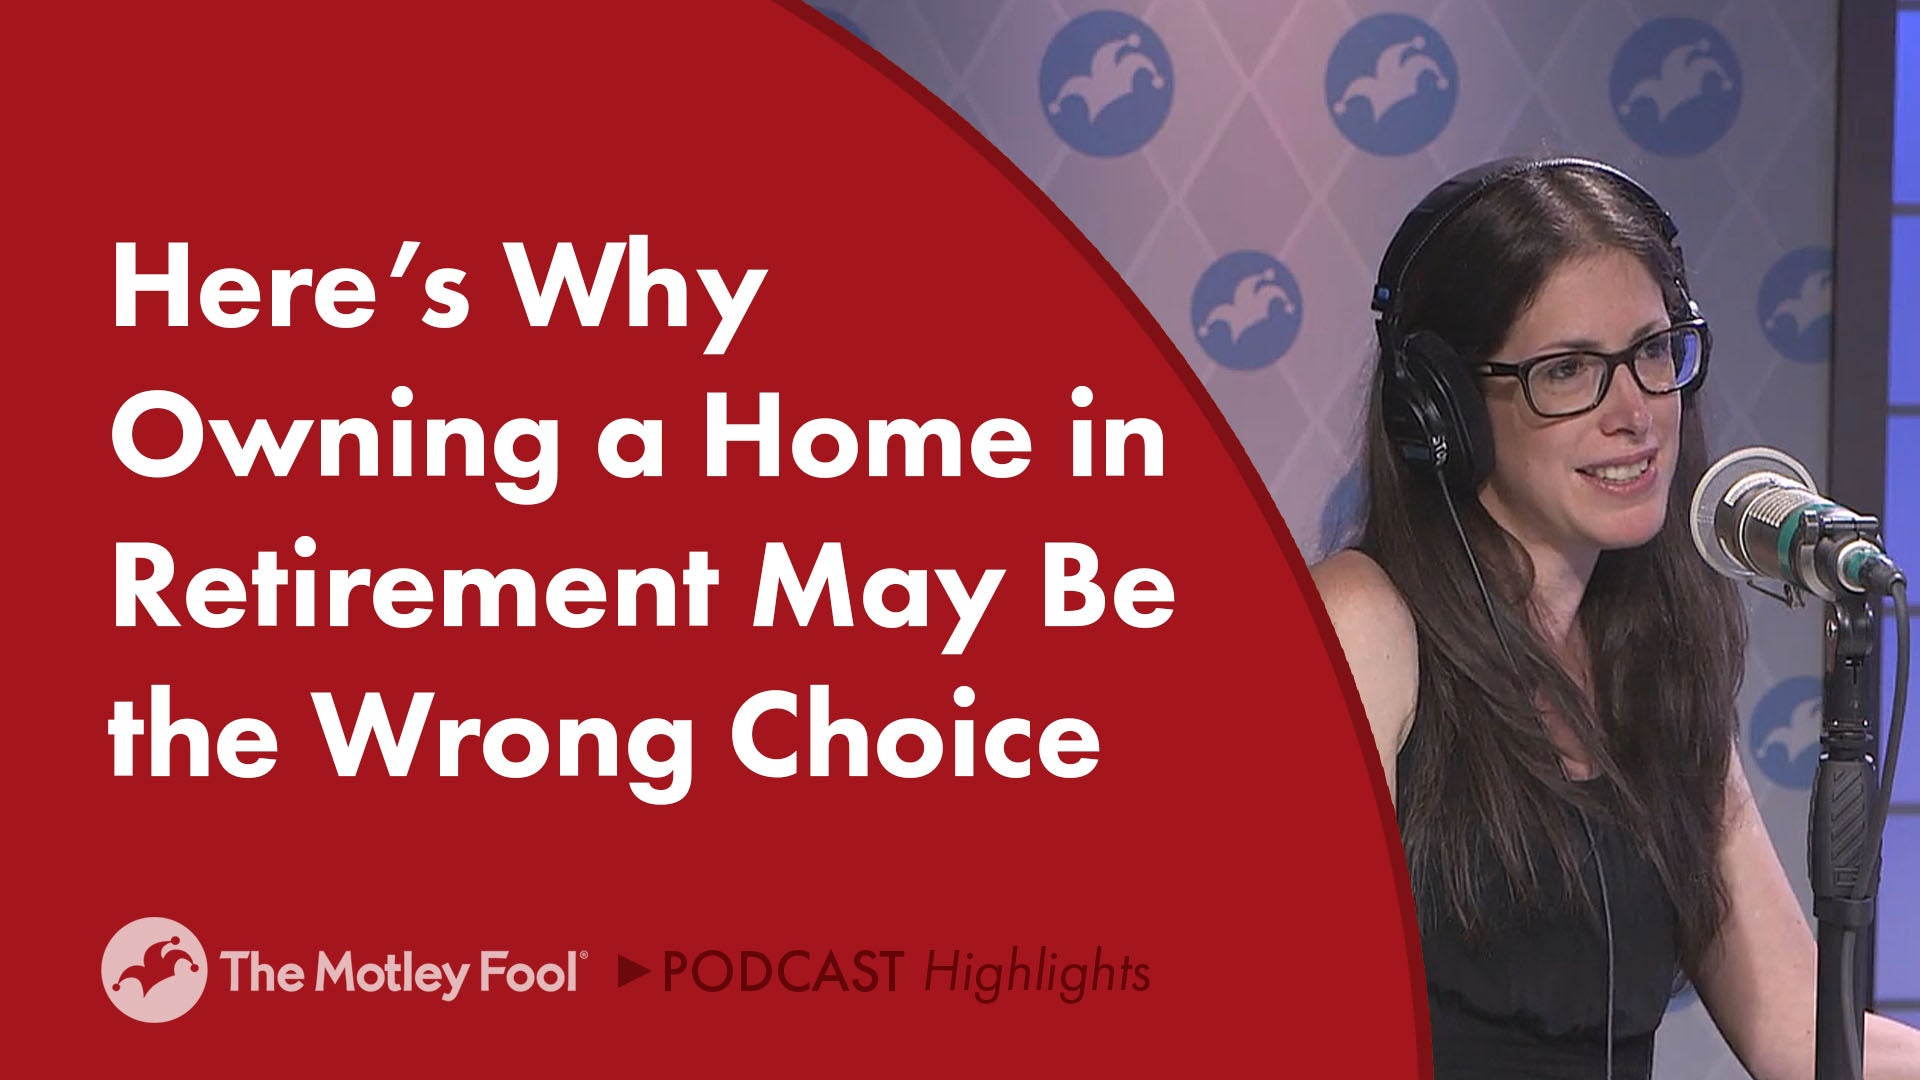 Here's Why Owning a Home in Retirement May Be the Wrong Choice